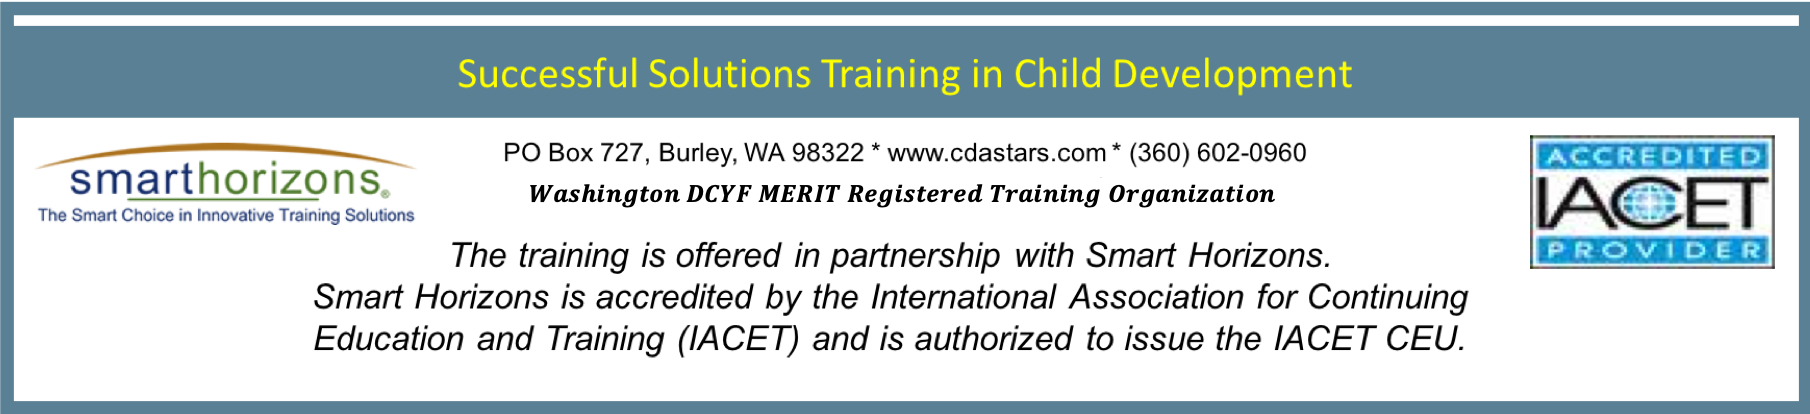 CEU online childcare training courses with certificates